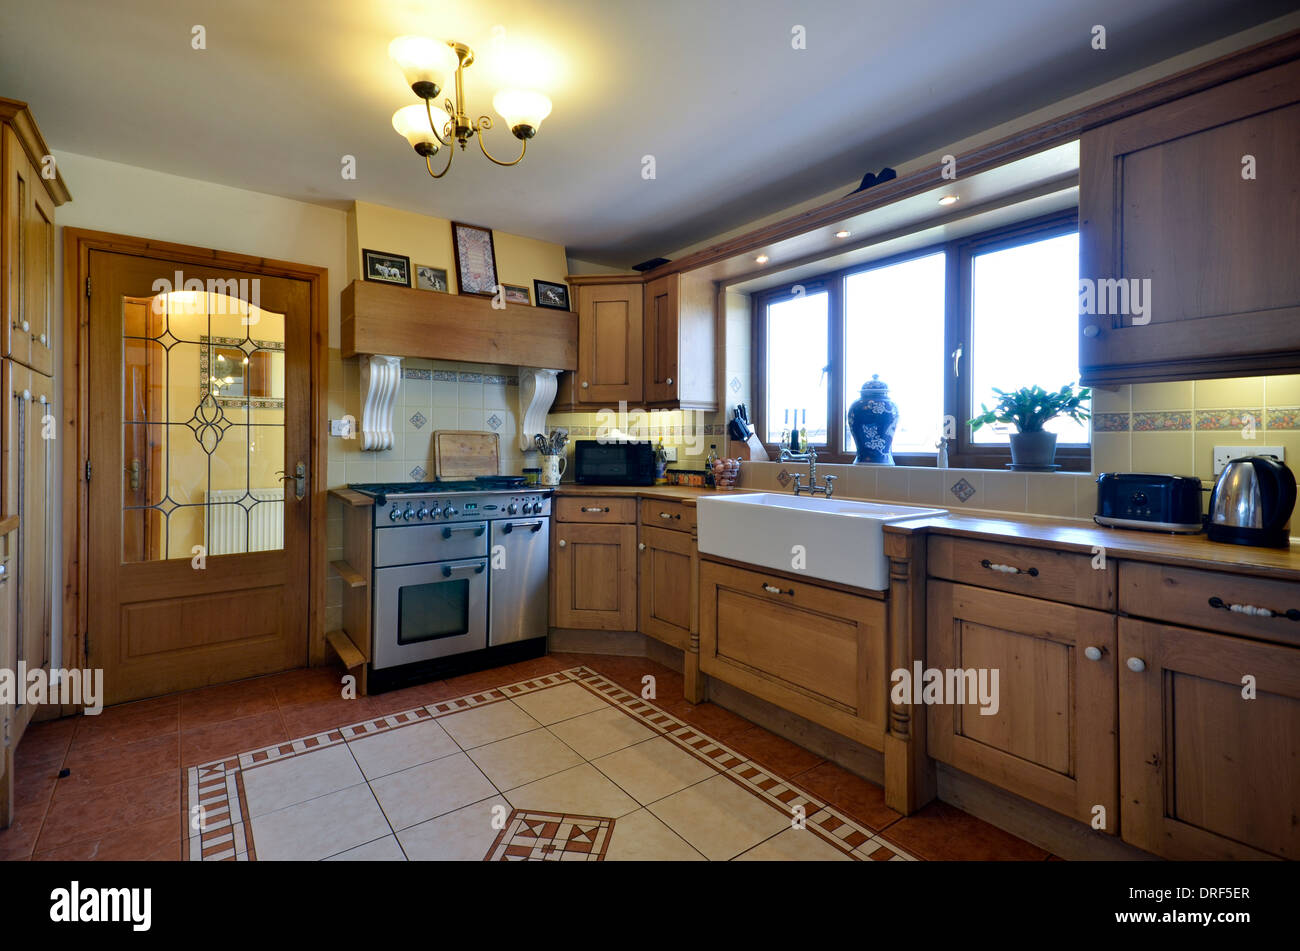 Belfast Sink Stockfotos & Belfast Sink Bilder - Alamy